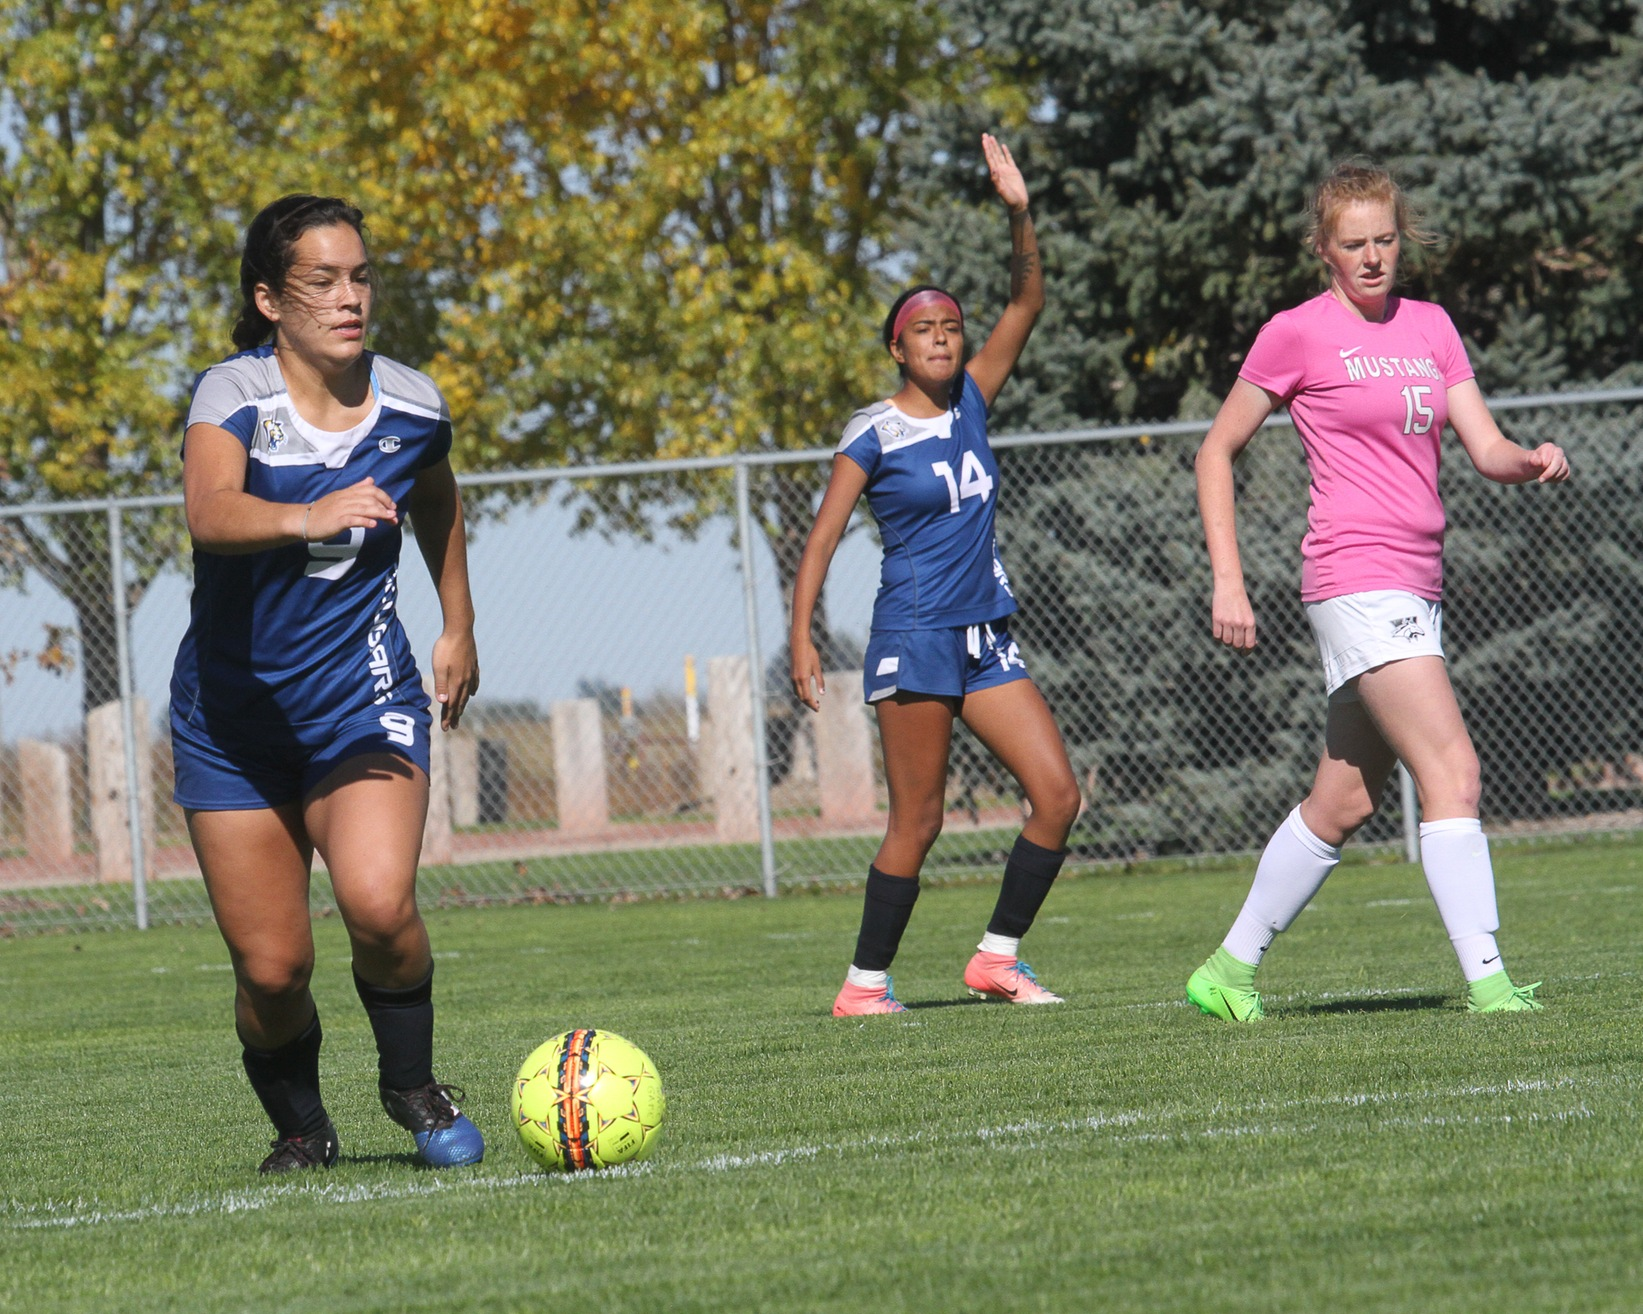 WNCC women's soccer falls to Western Wyoming